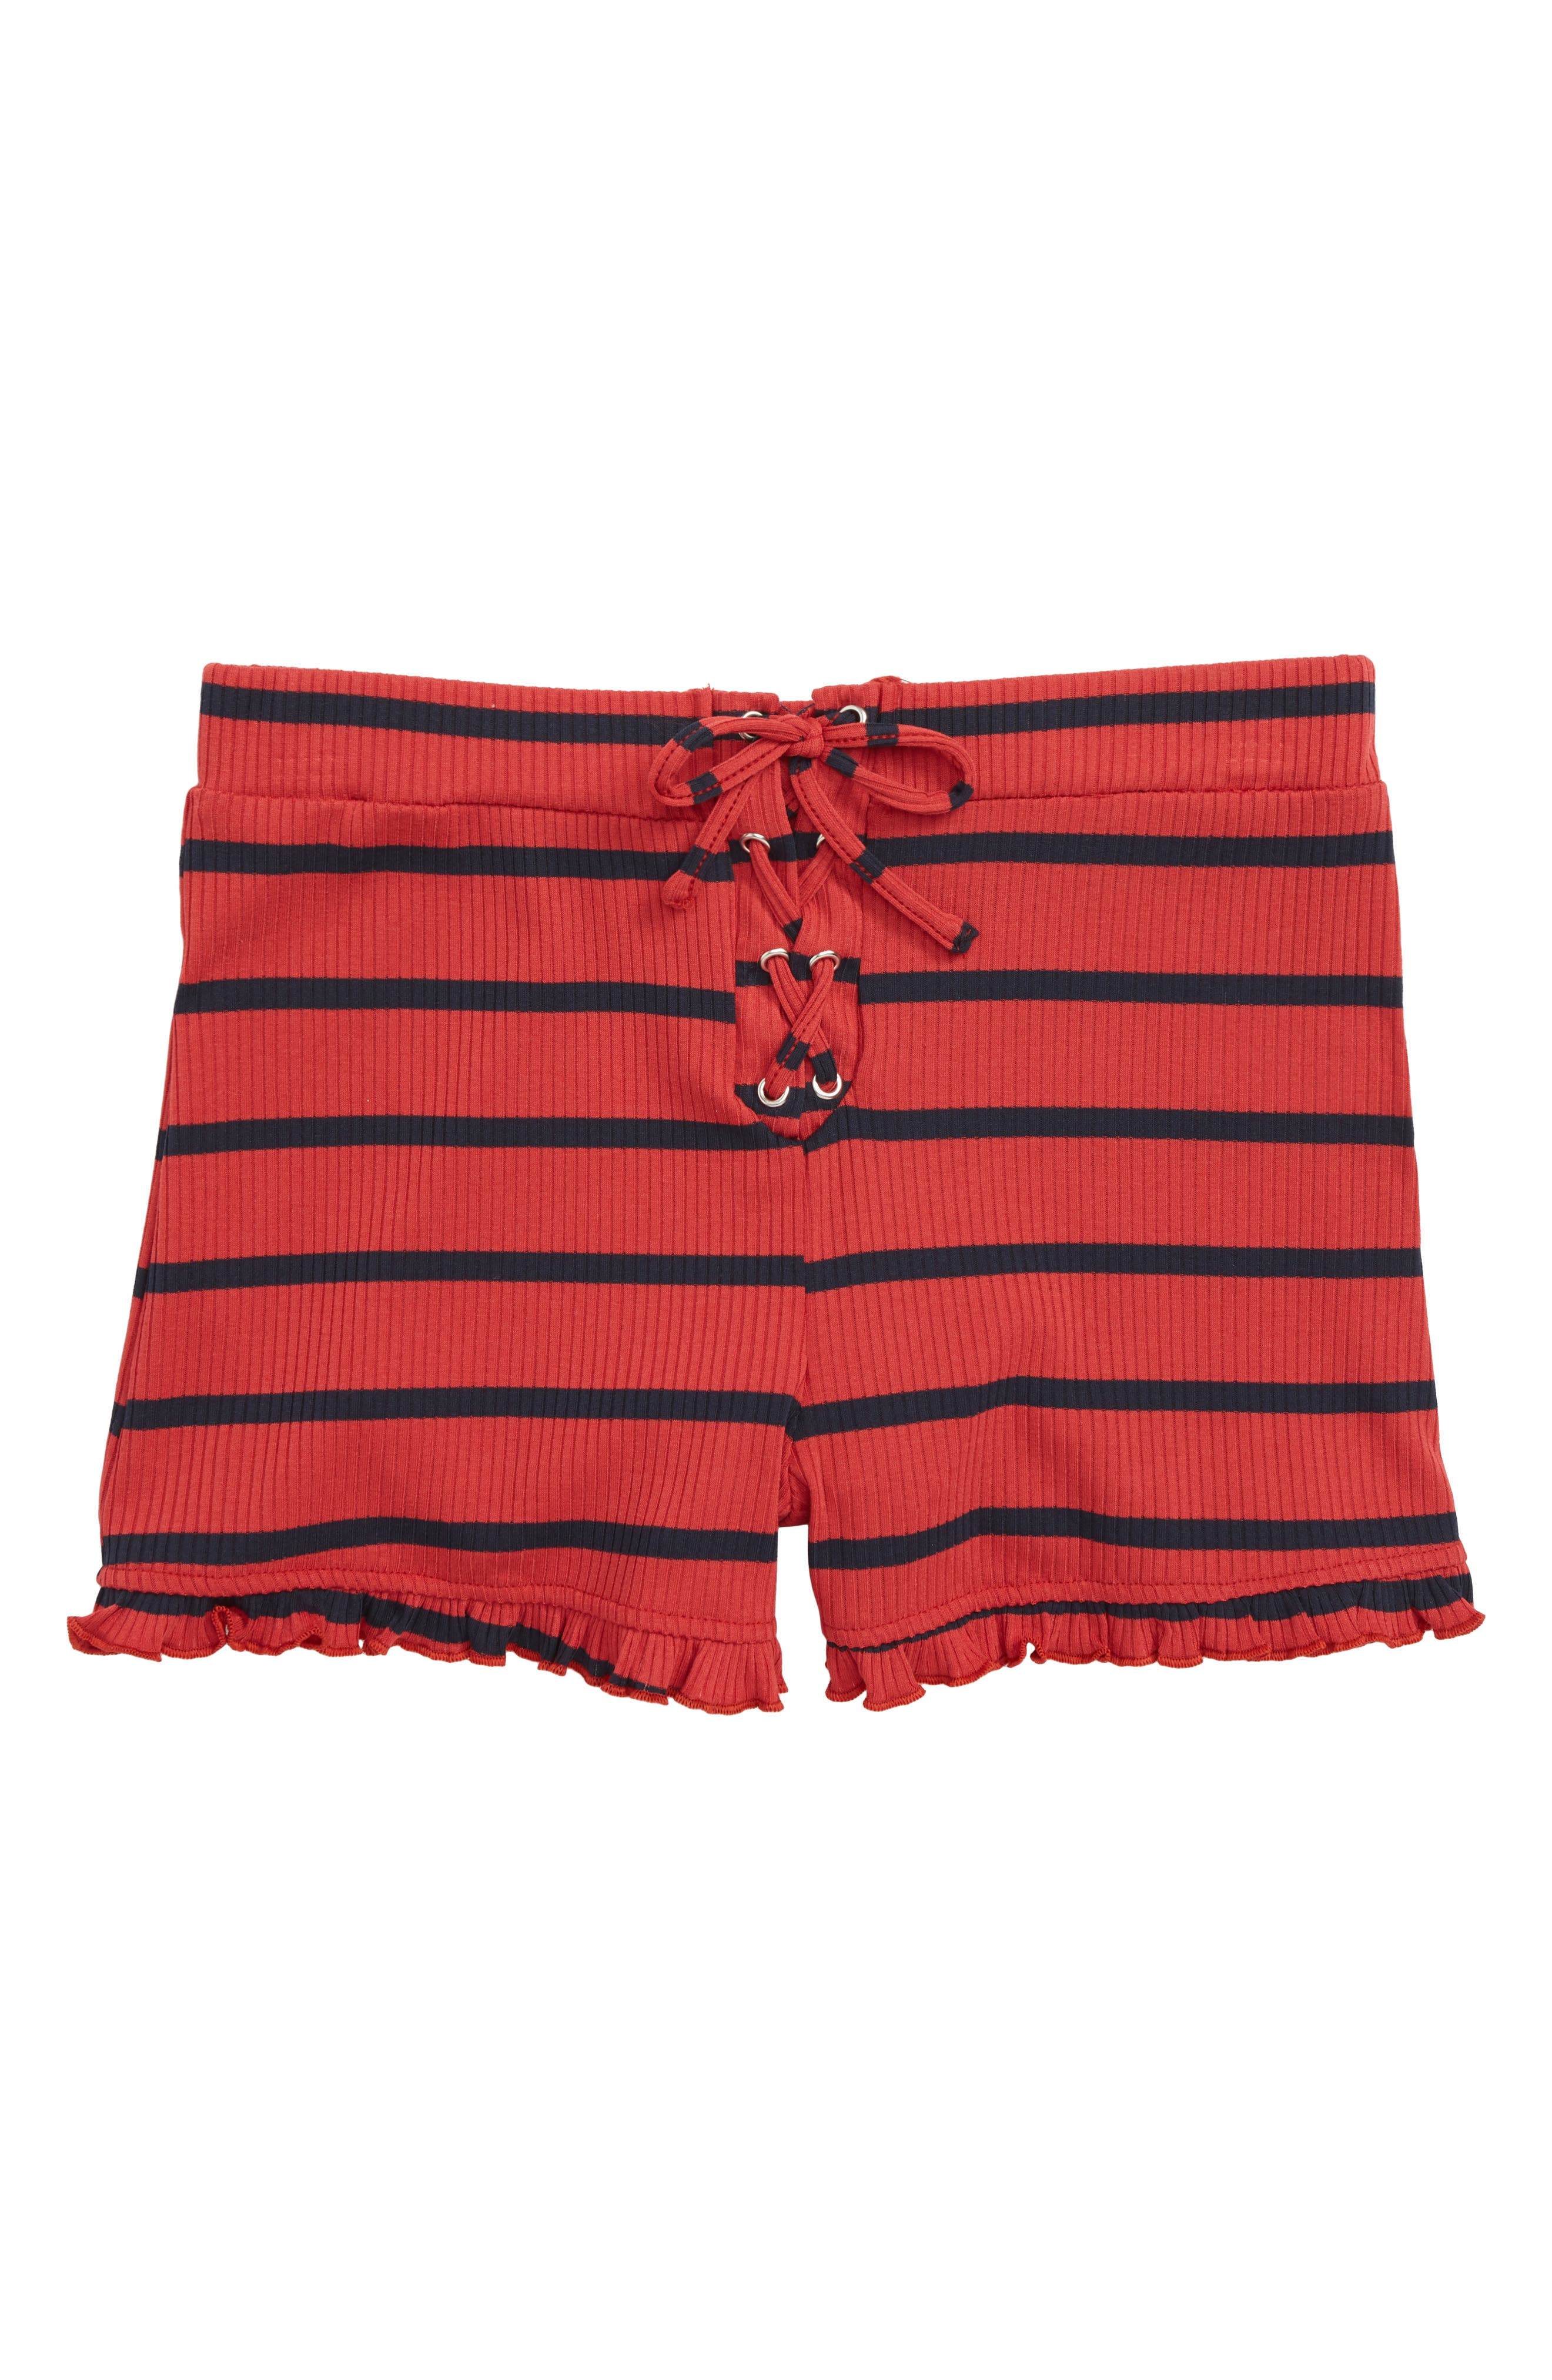 Stripe Ruffle Shorts,                         Main,                         color, Red/ Navy